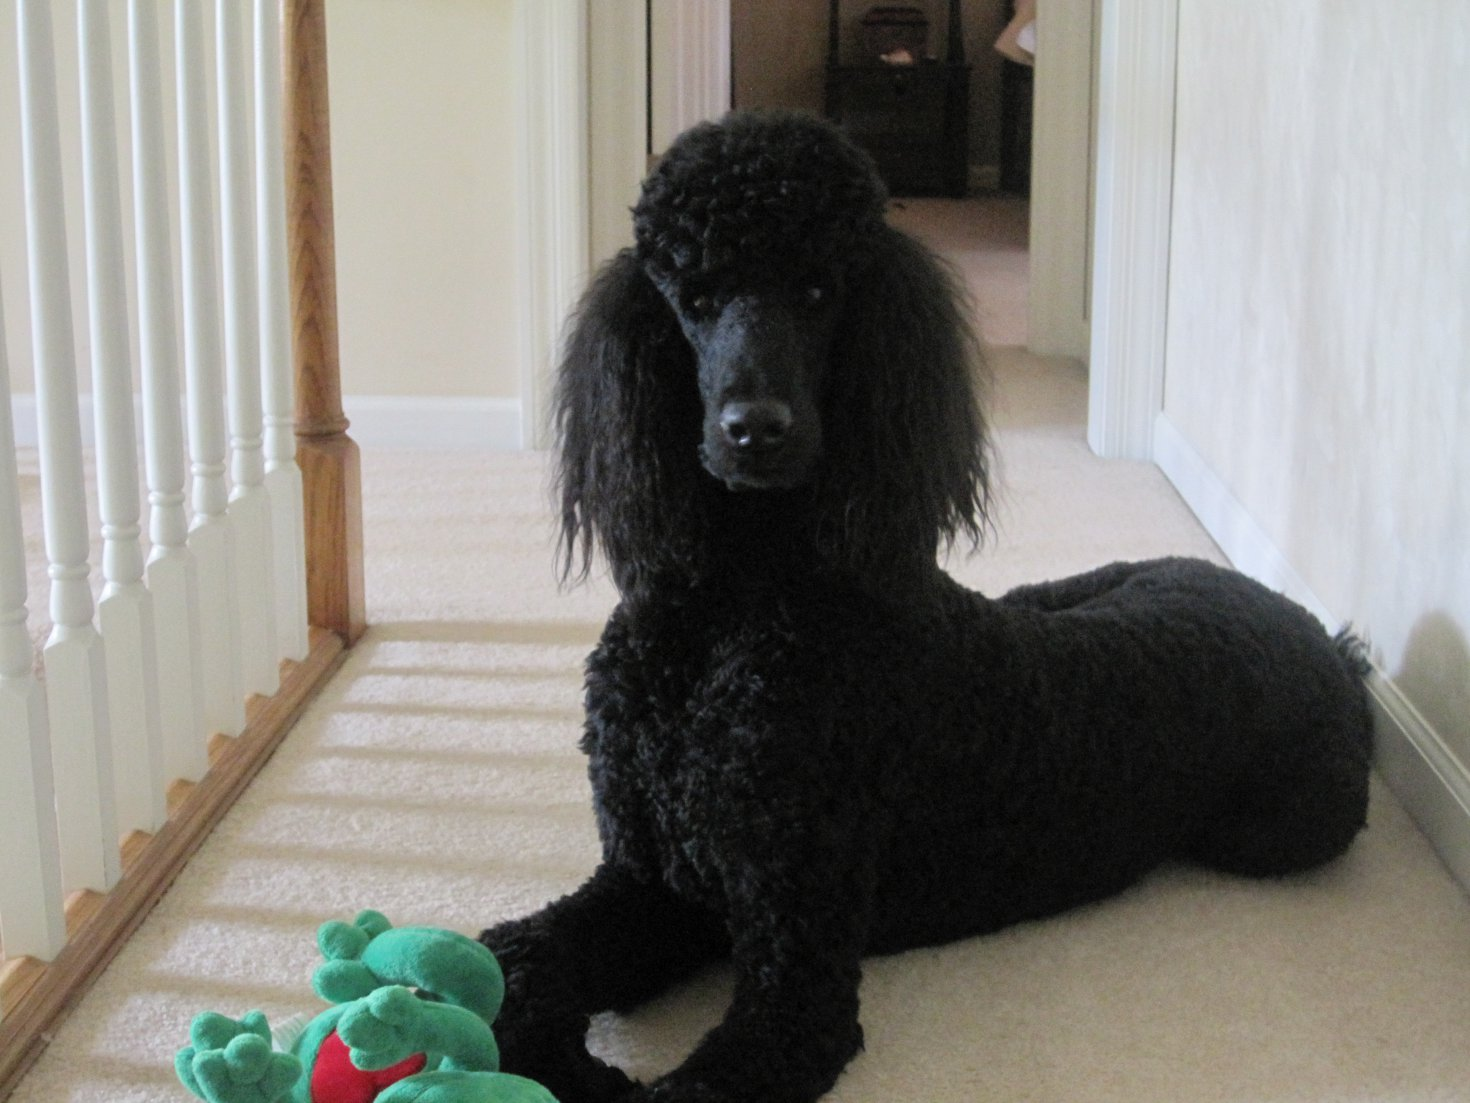 You knew you had a poodle when (scary poodle intelligence) . . . .-img_5724.jpg